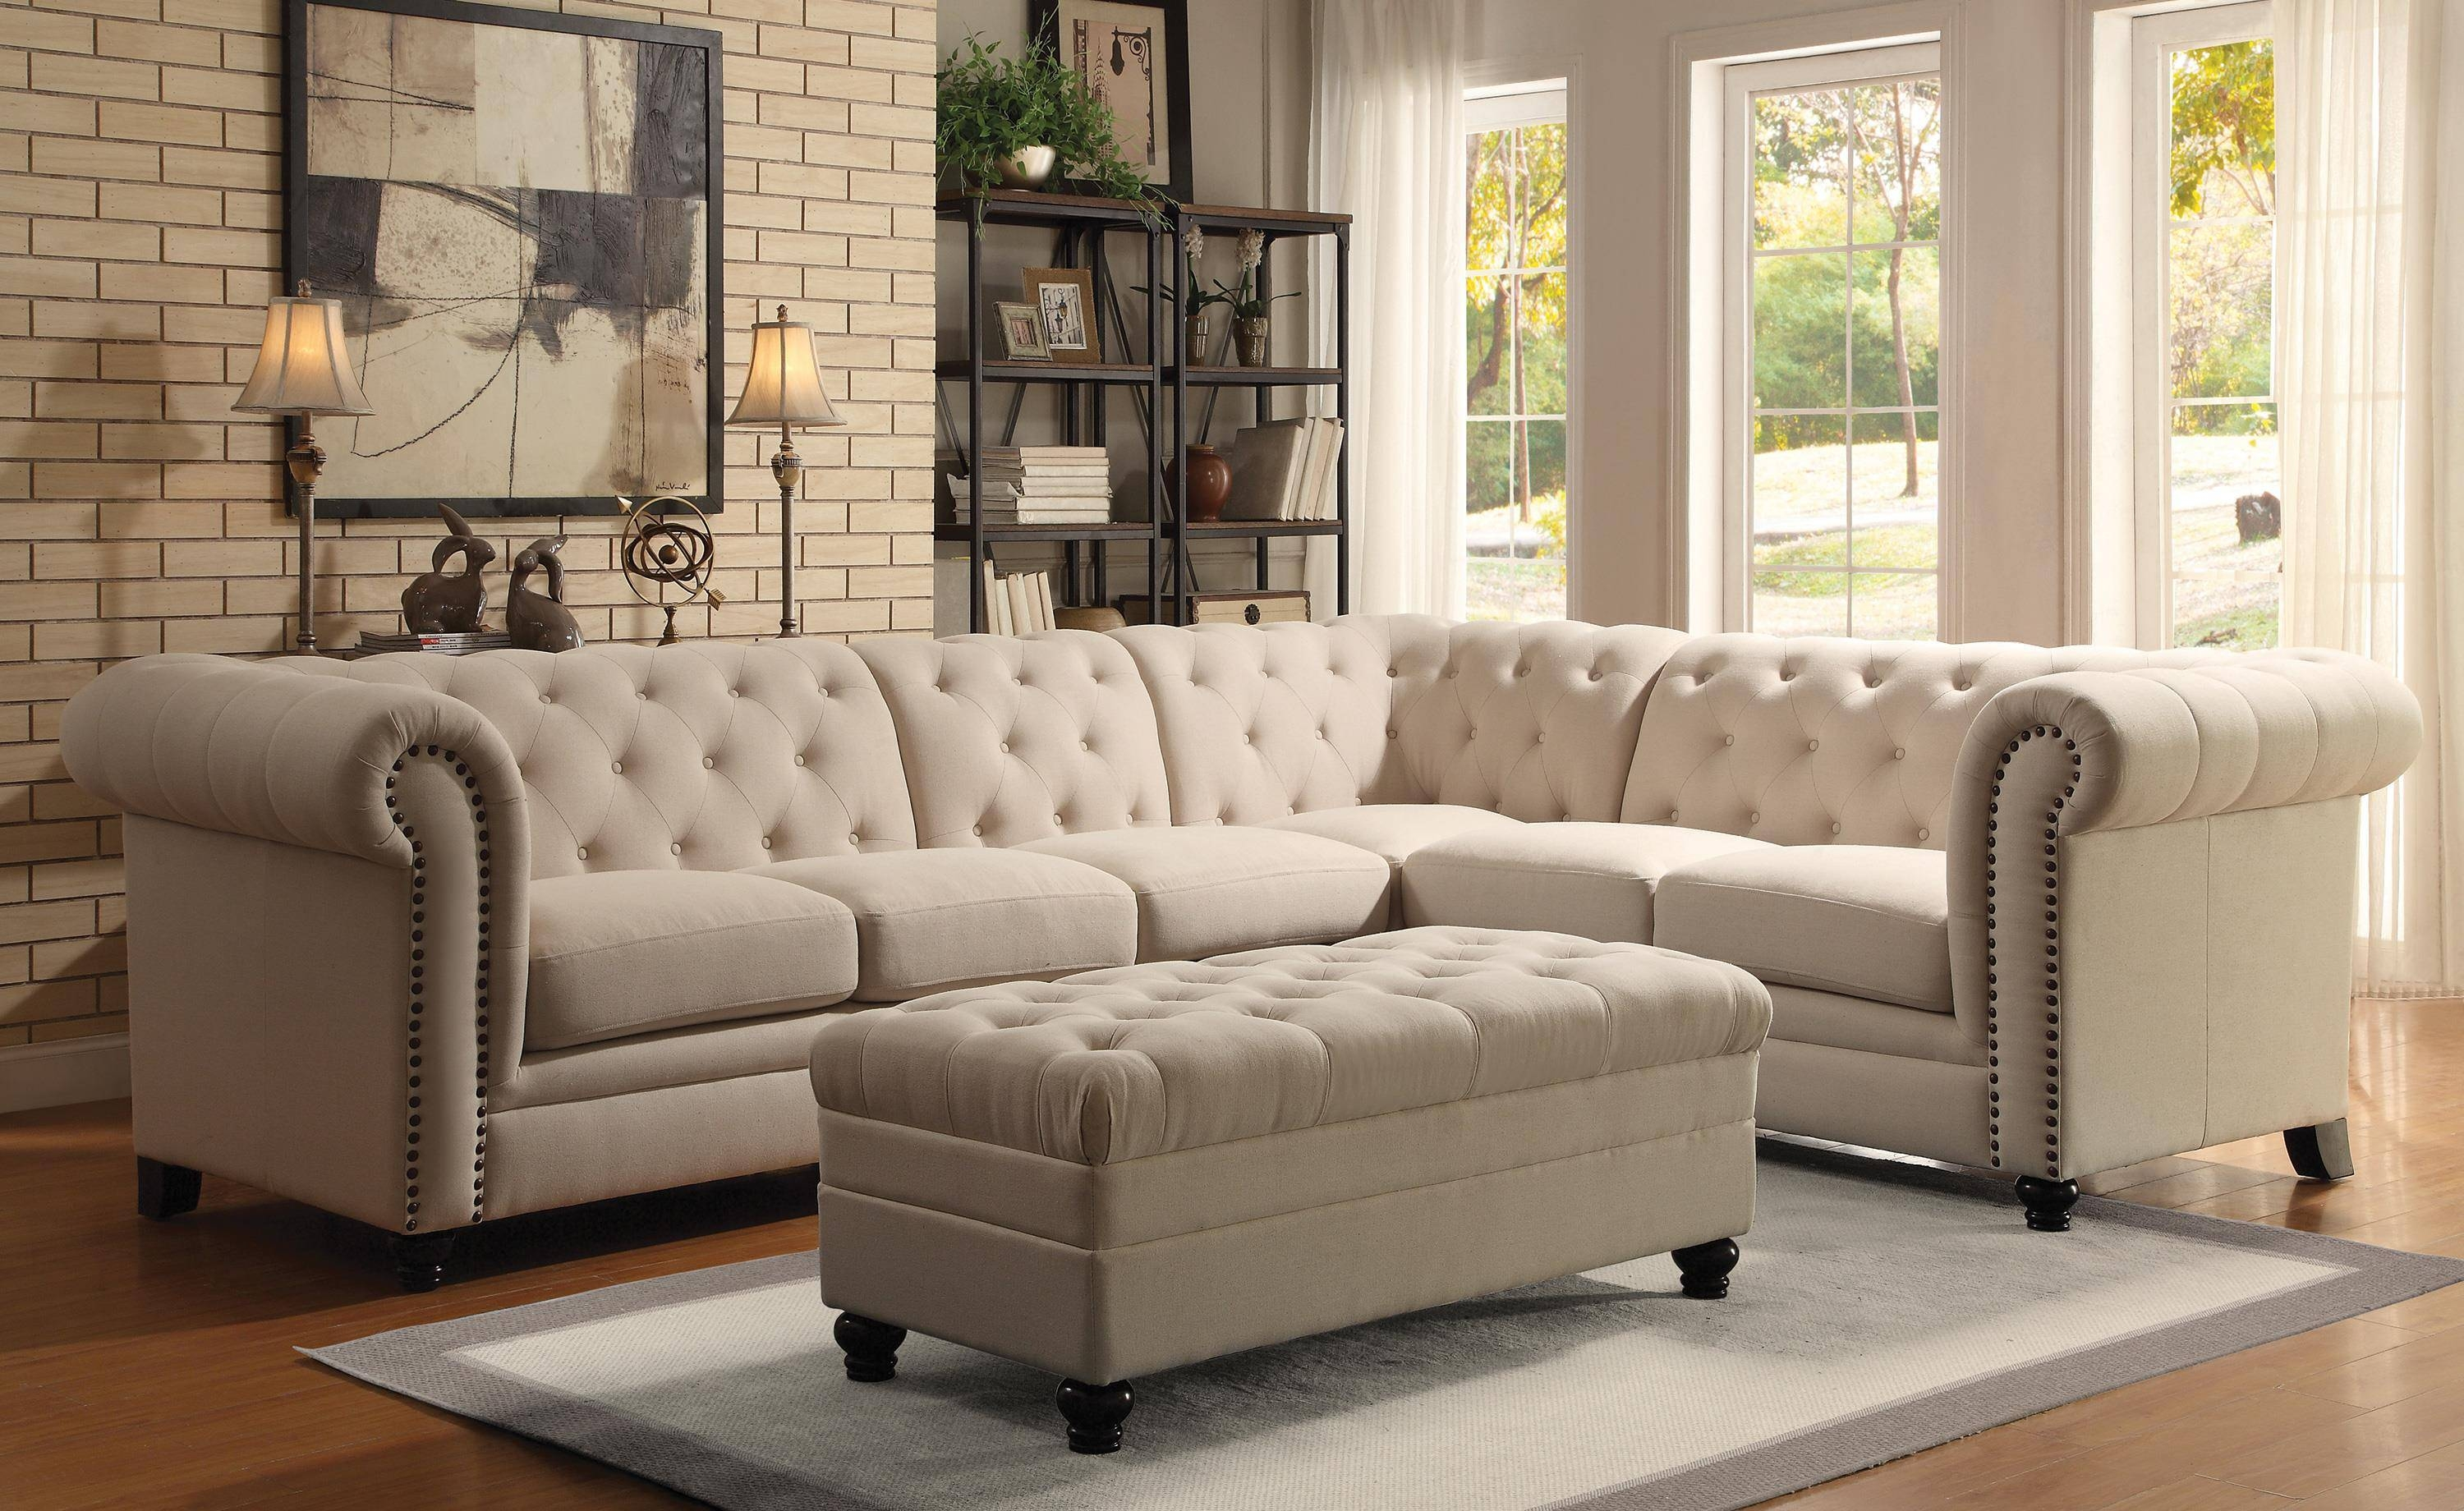 Coaster Roy Button-Tufted Sectional Sofa - Coaster Fine Furniture with Traditional Sectional Sofas (Image 6 of 25)